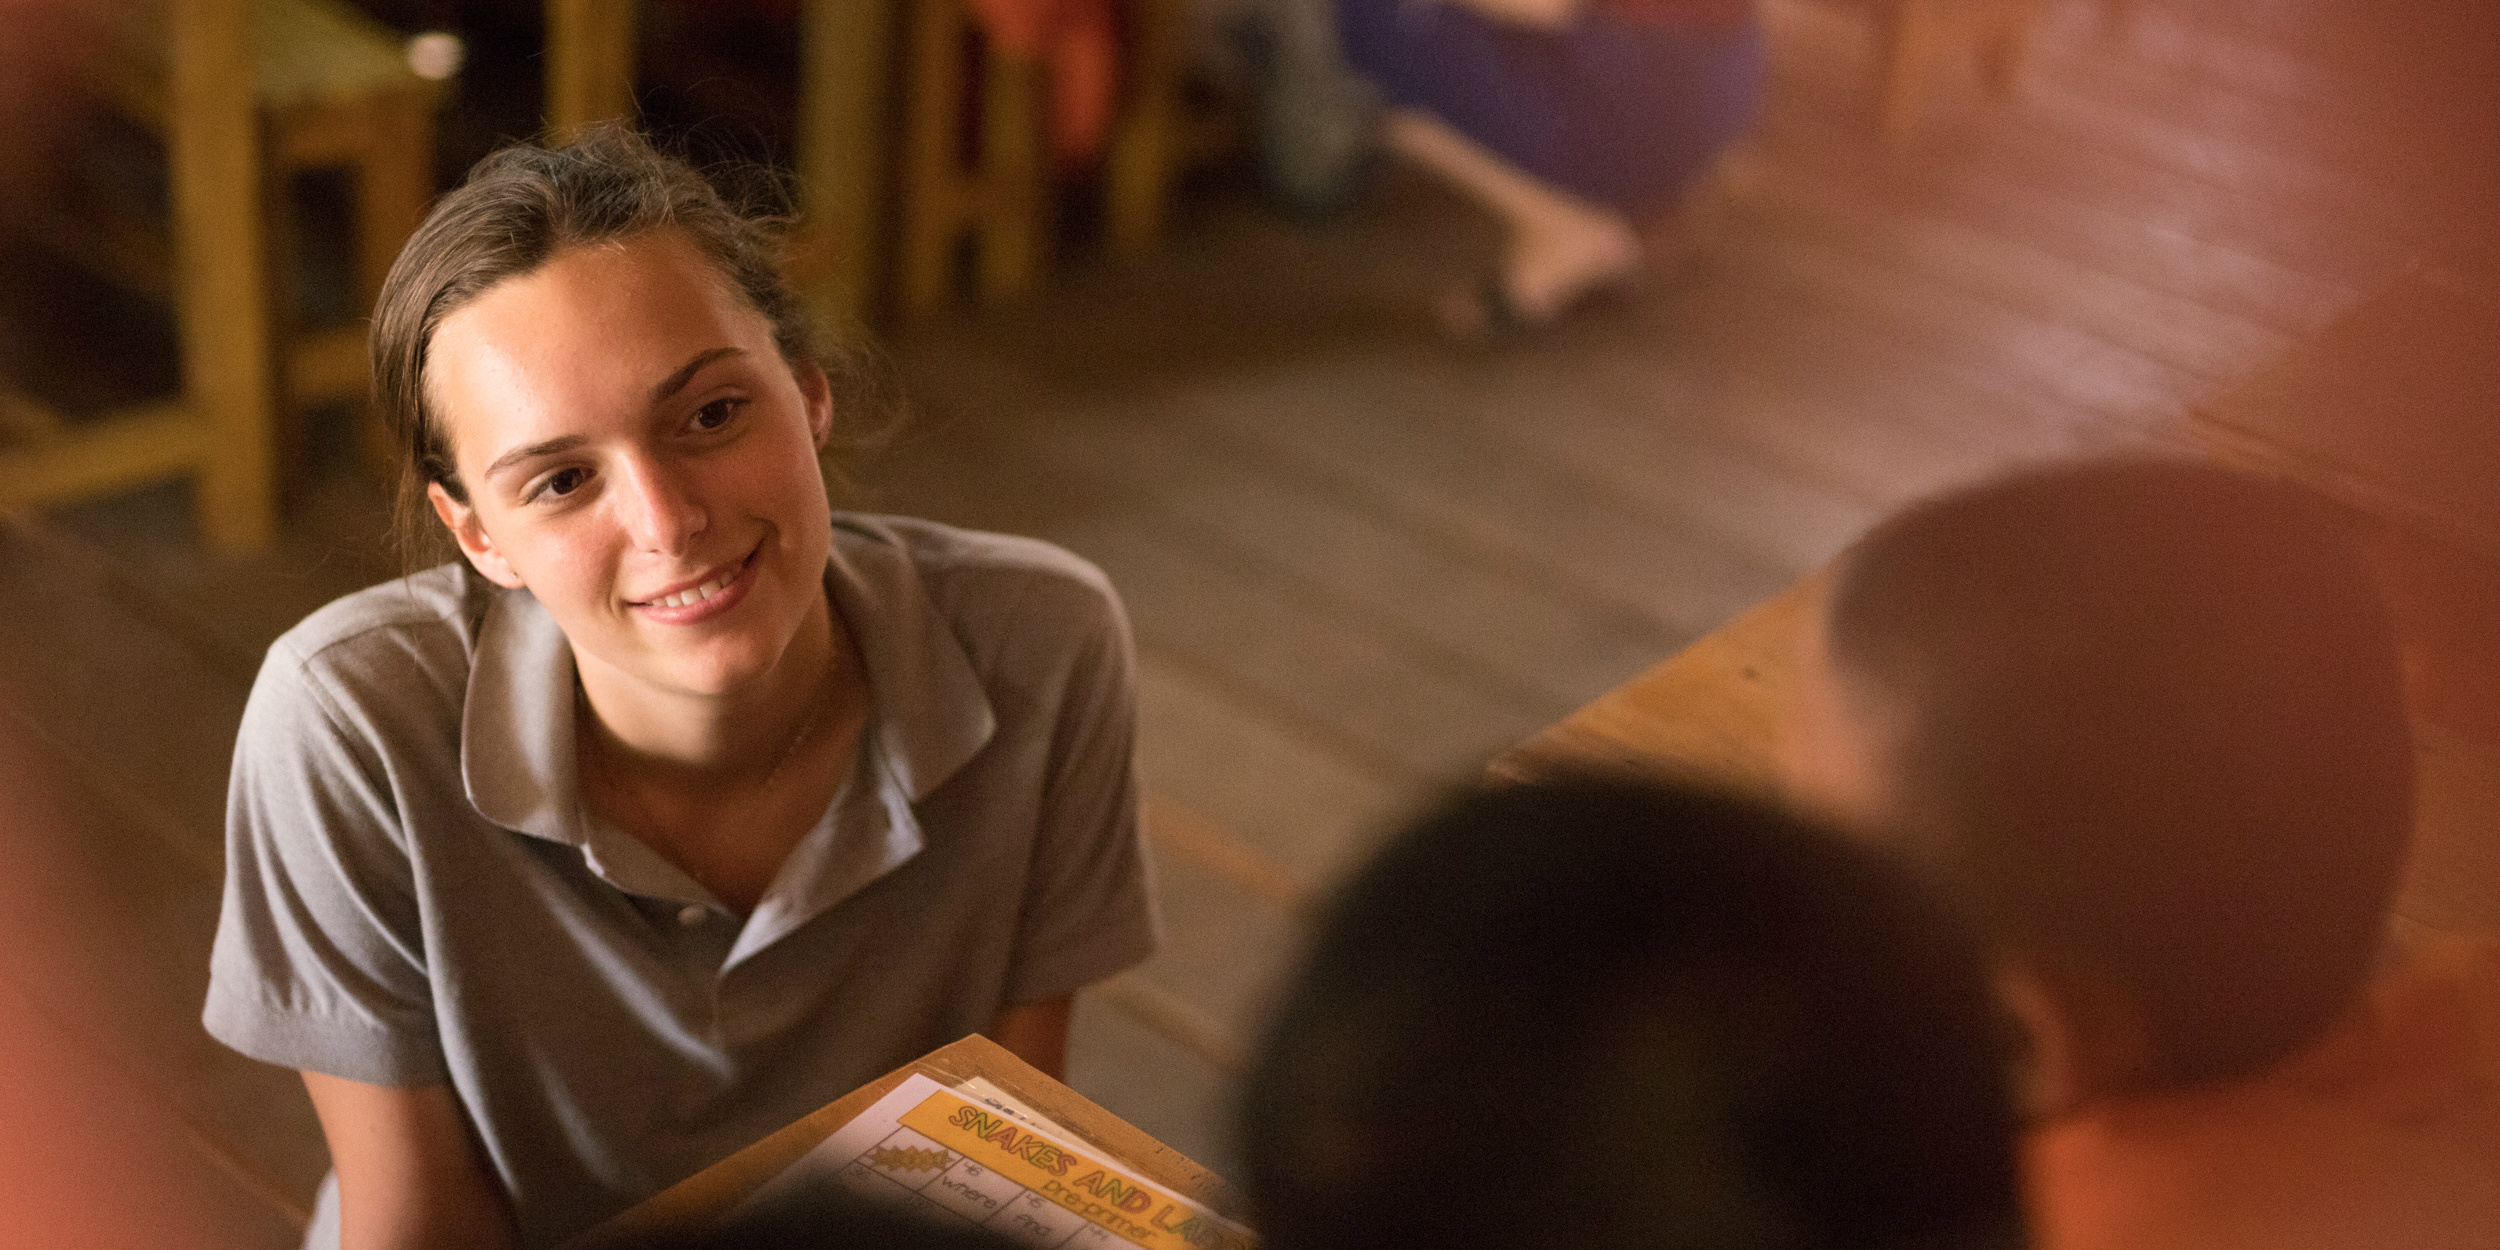 A TEFL teacher engages with students during a daily lesson with novice Buddhist monks.